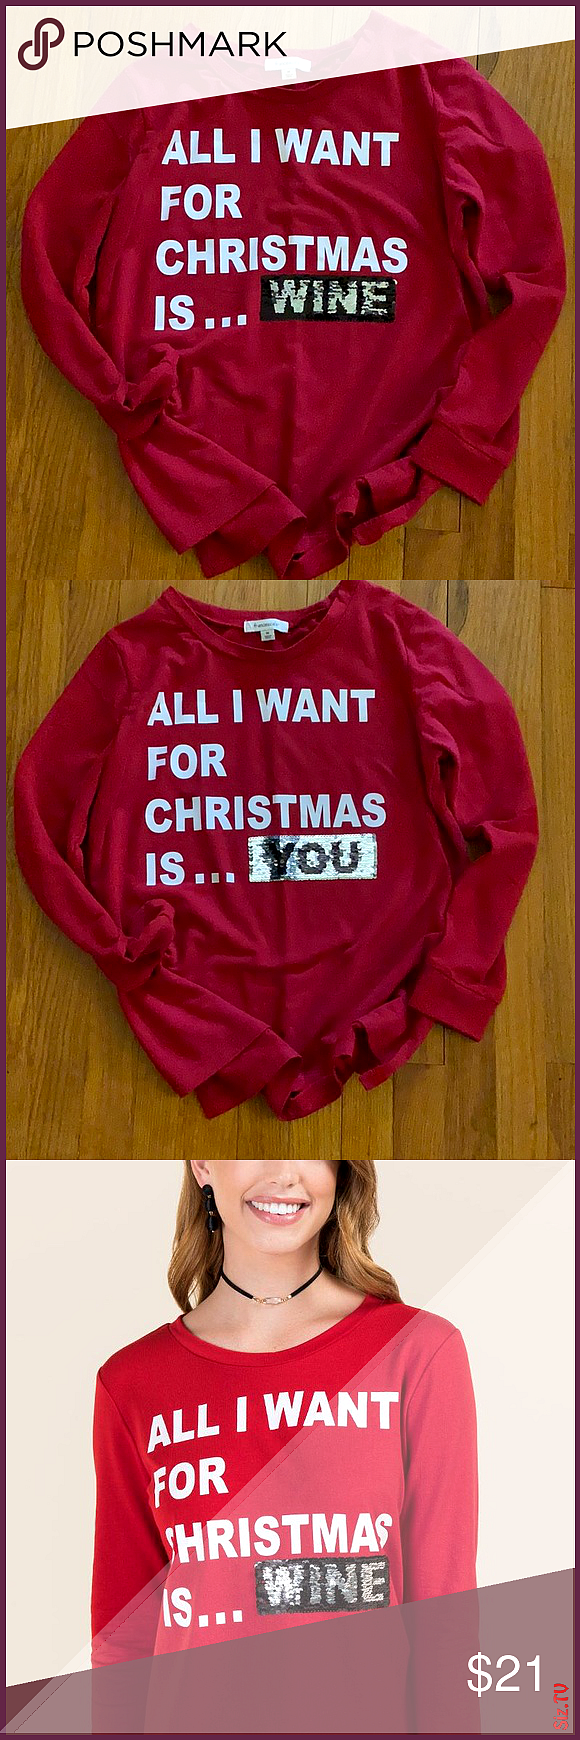 Cute Christmas Sweater Changeable Wording Sweater Used Once Excellent Condition Francesca S Collections Swea Cute Christmas Sweater Christmas Sweaters Sweaters